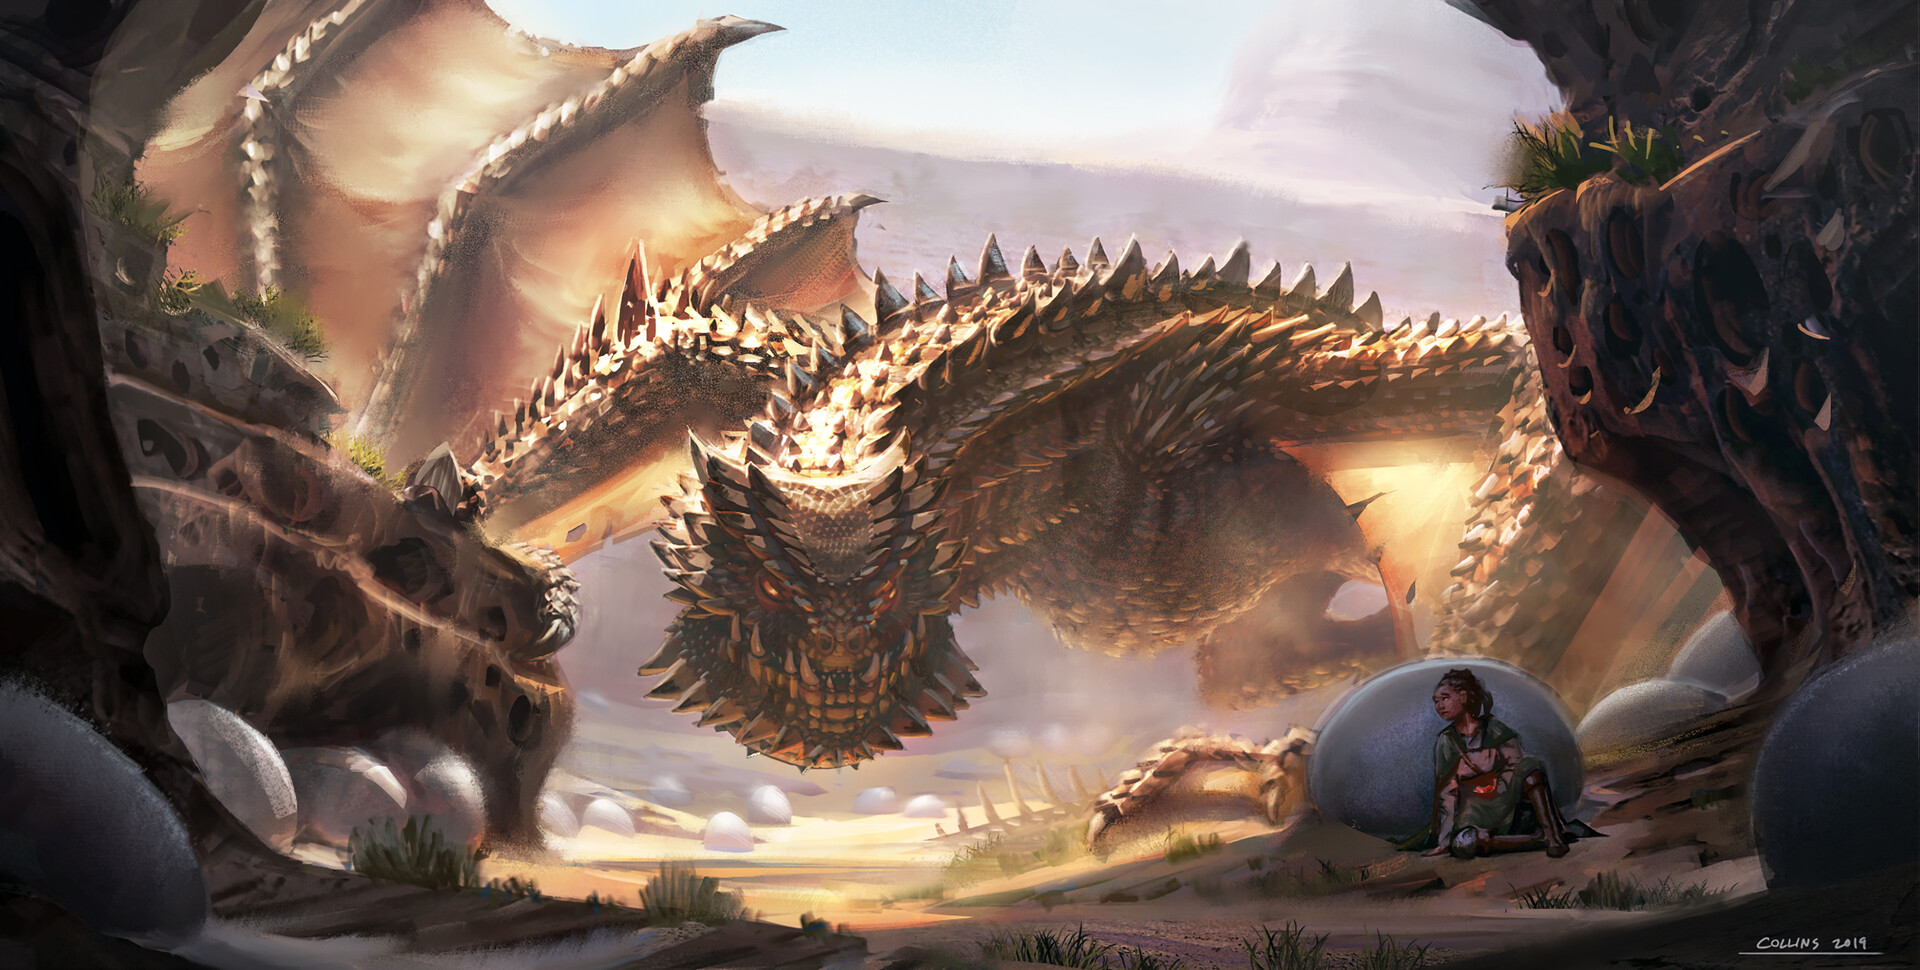 The Lair Of The Horned Desert Dragon By Andrew Collins Imaginarydragons